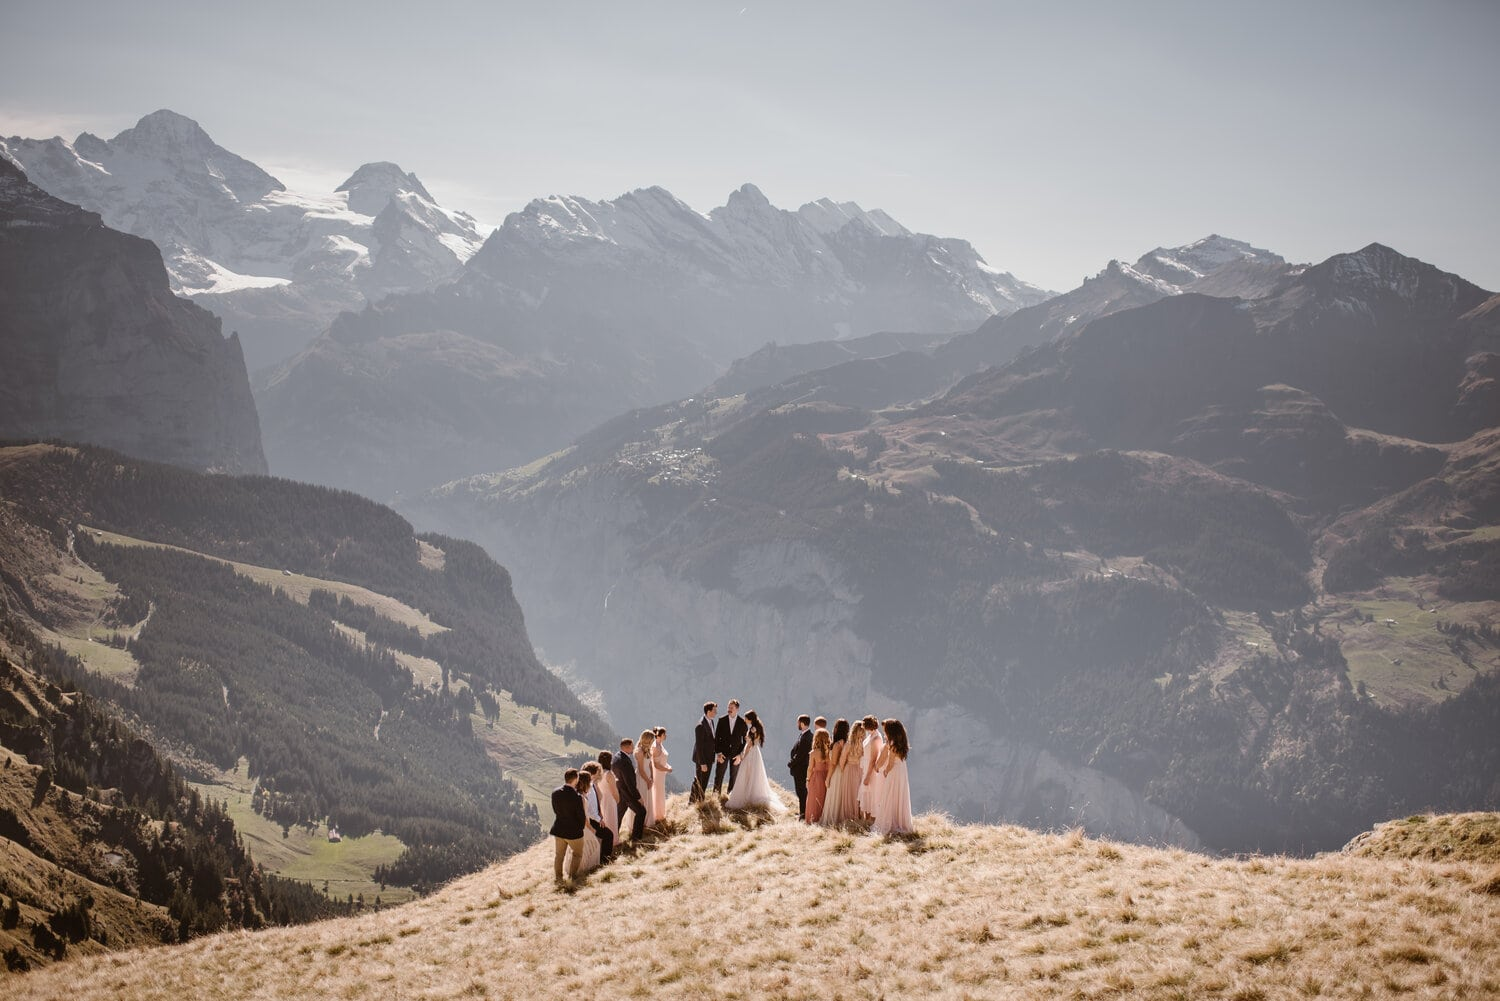 Intimate wedding ceremony on a grassy hillside in the mountains.